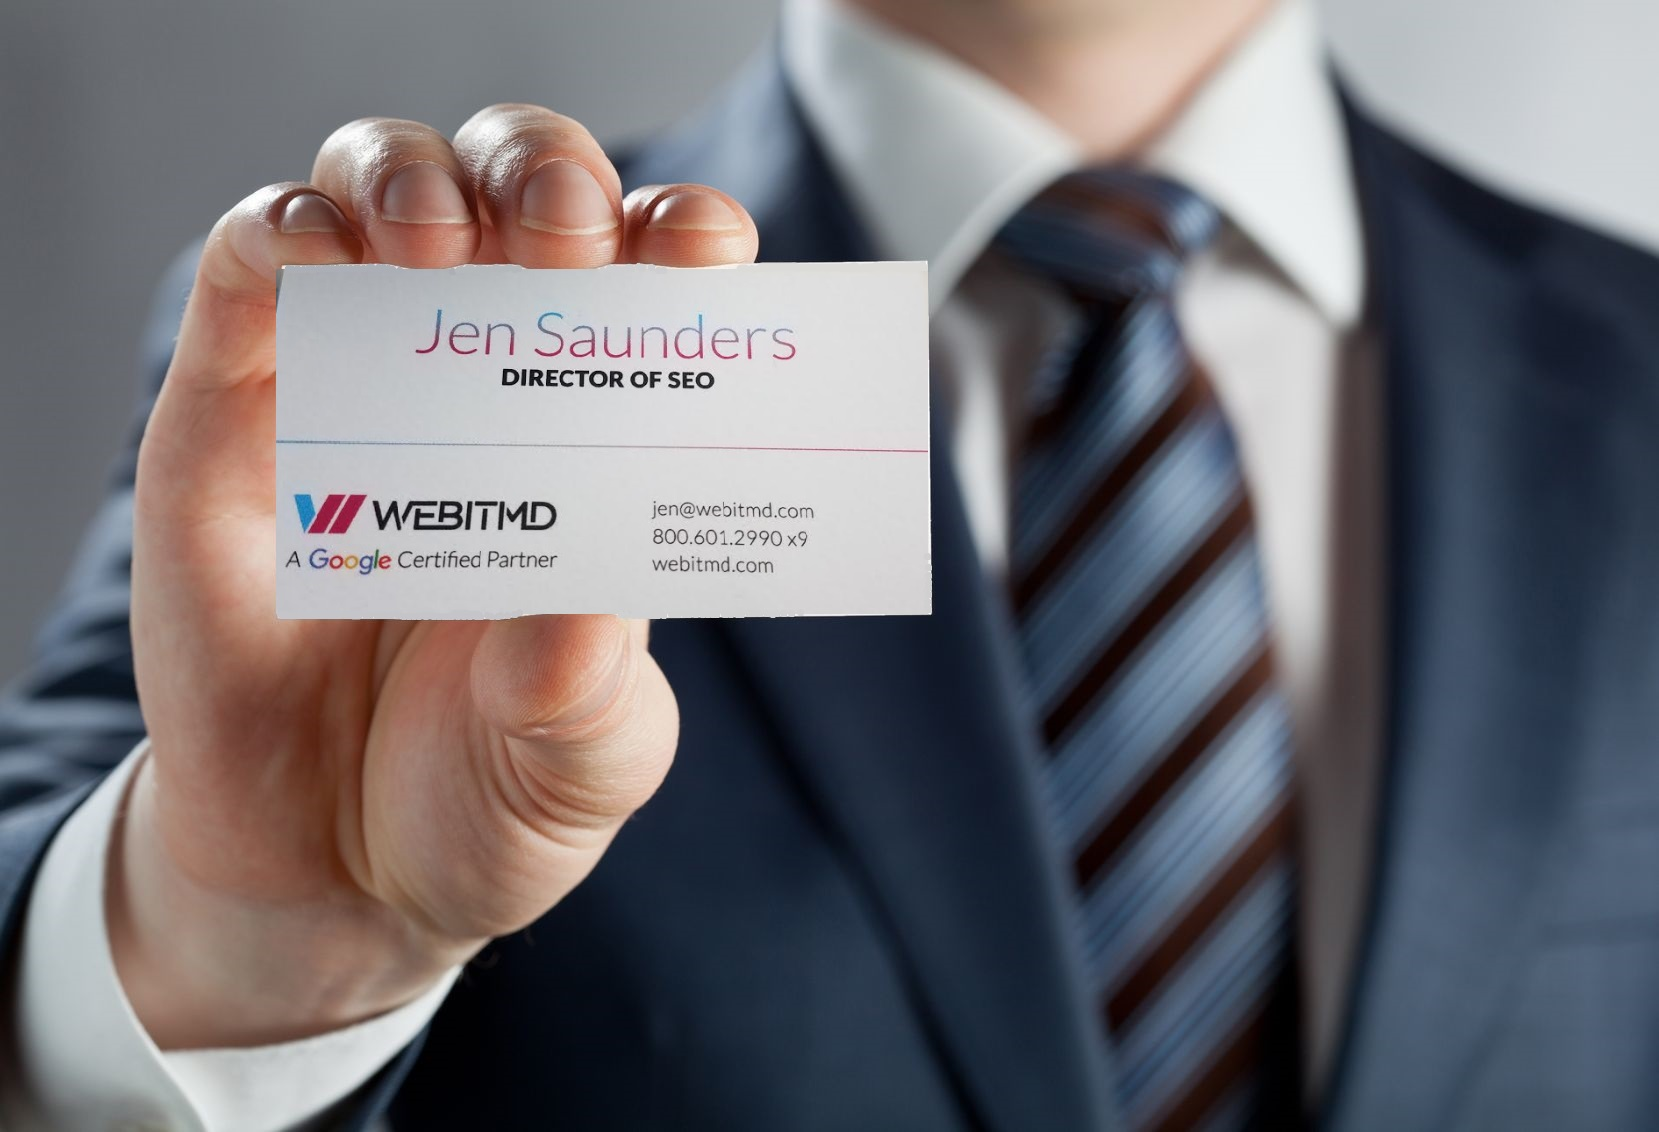 Business Cards Matter - Learn How To Use Them Right - WEBITMD